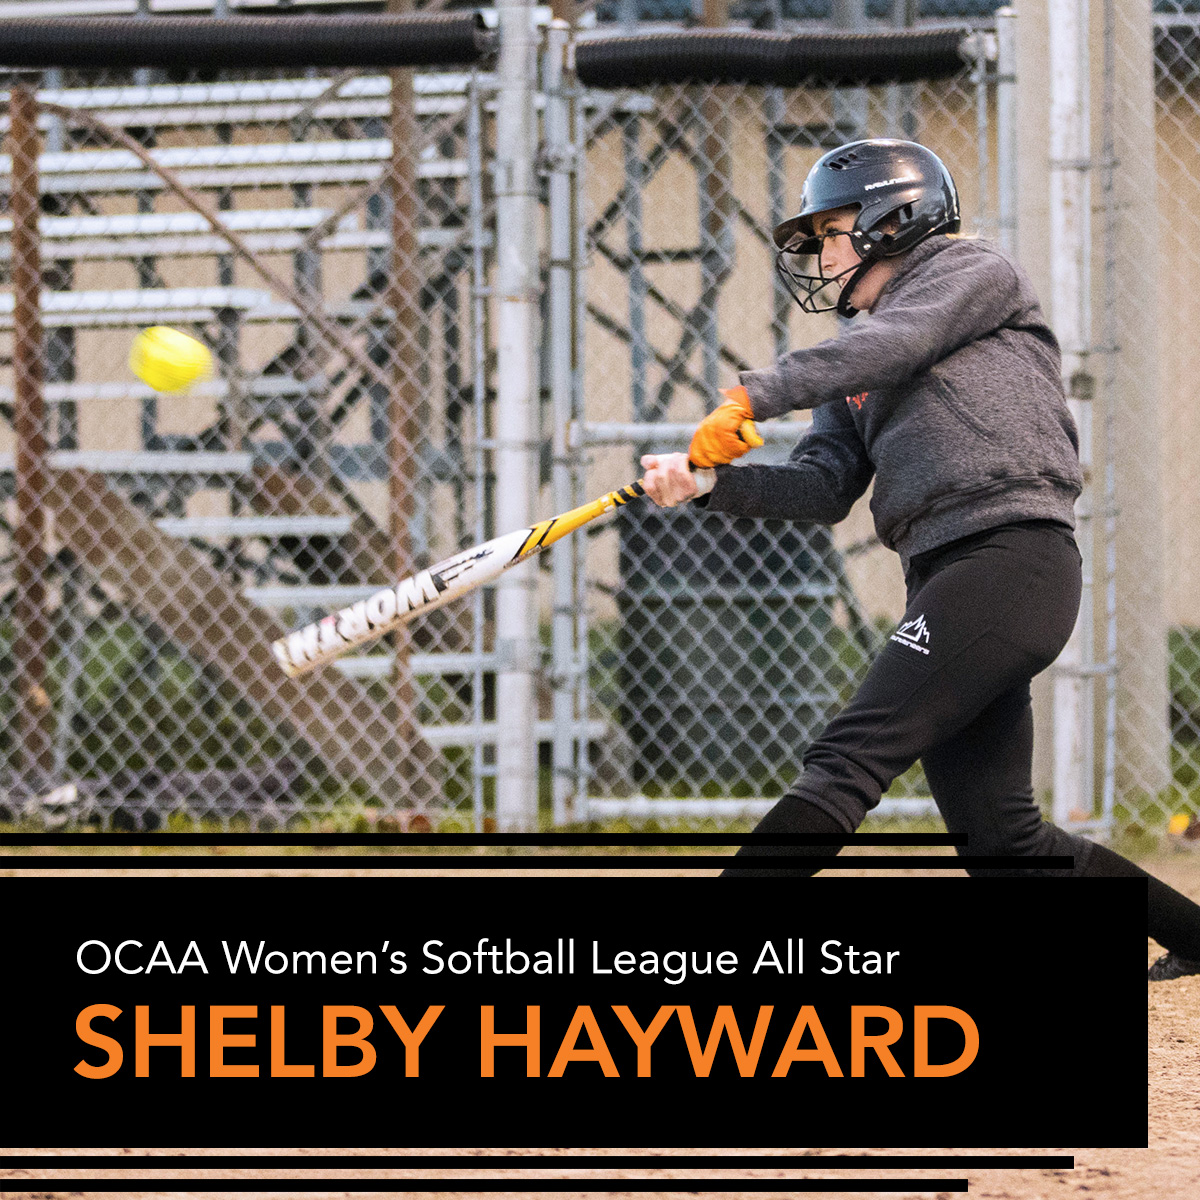 Mohawk's Hayward OCAA Women's Softball All-Star | Mohawk College